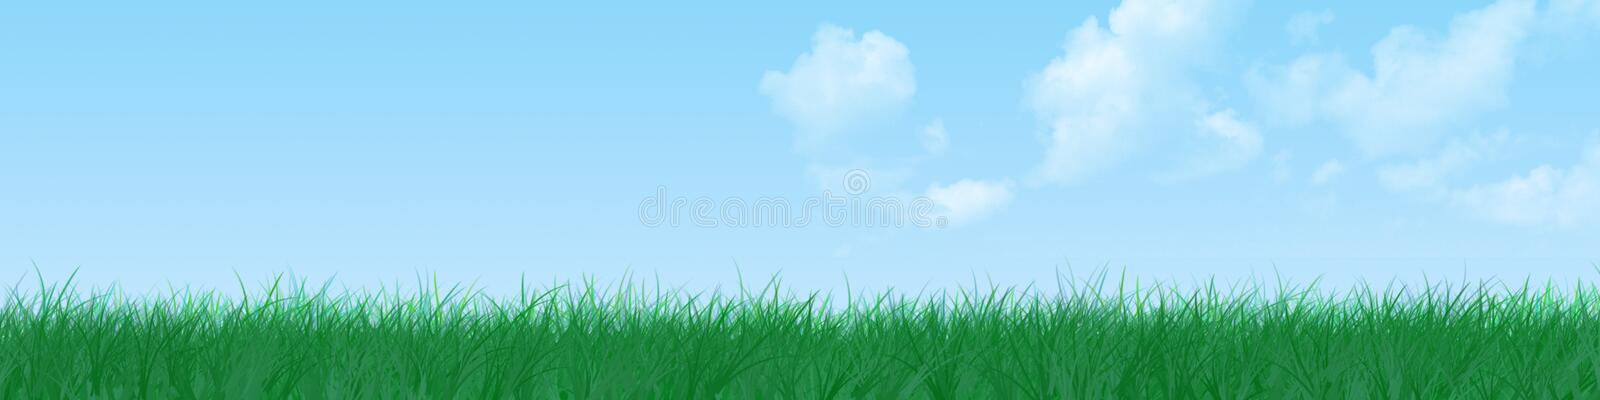 Download Grass banner stock photo. Image of space, banner, horizon - 3670166